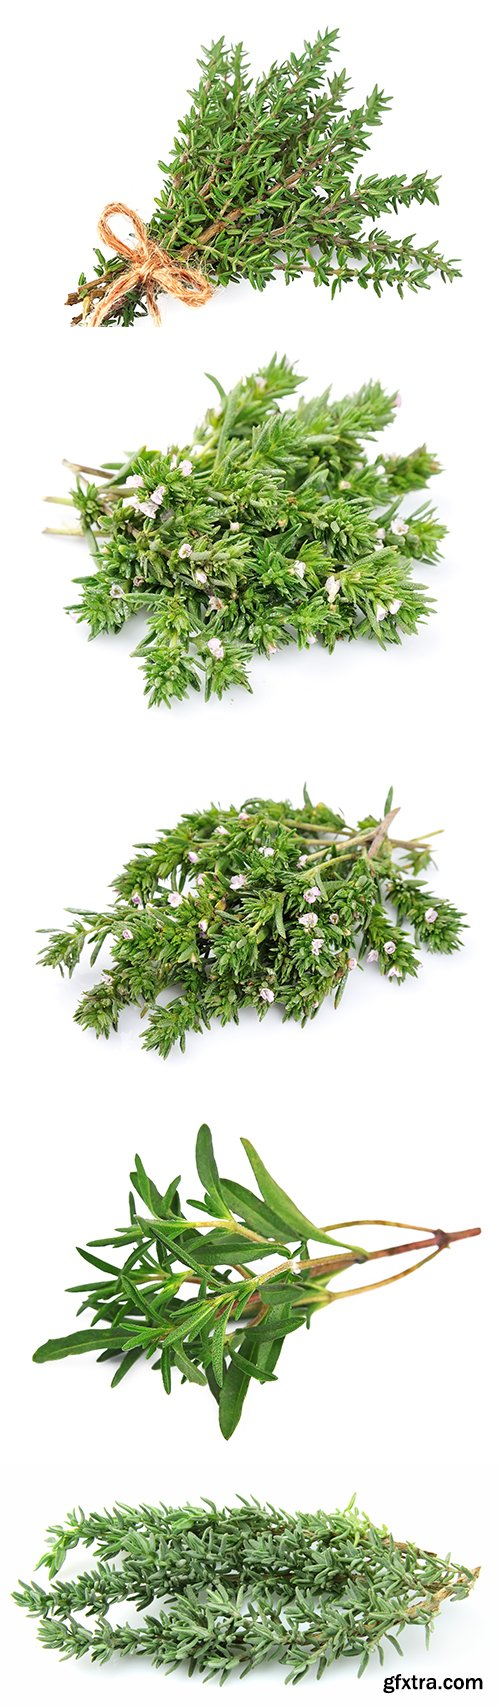 Thyme Herb Isolated - 10xJPGs